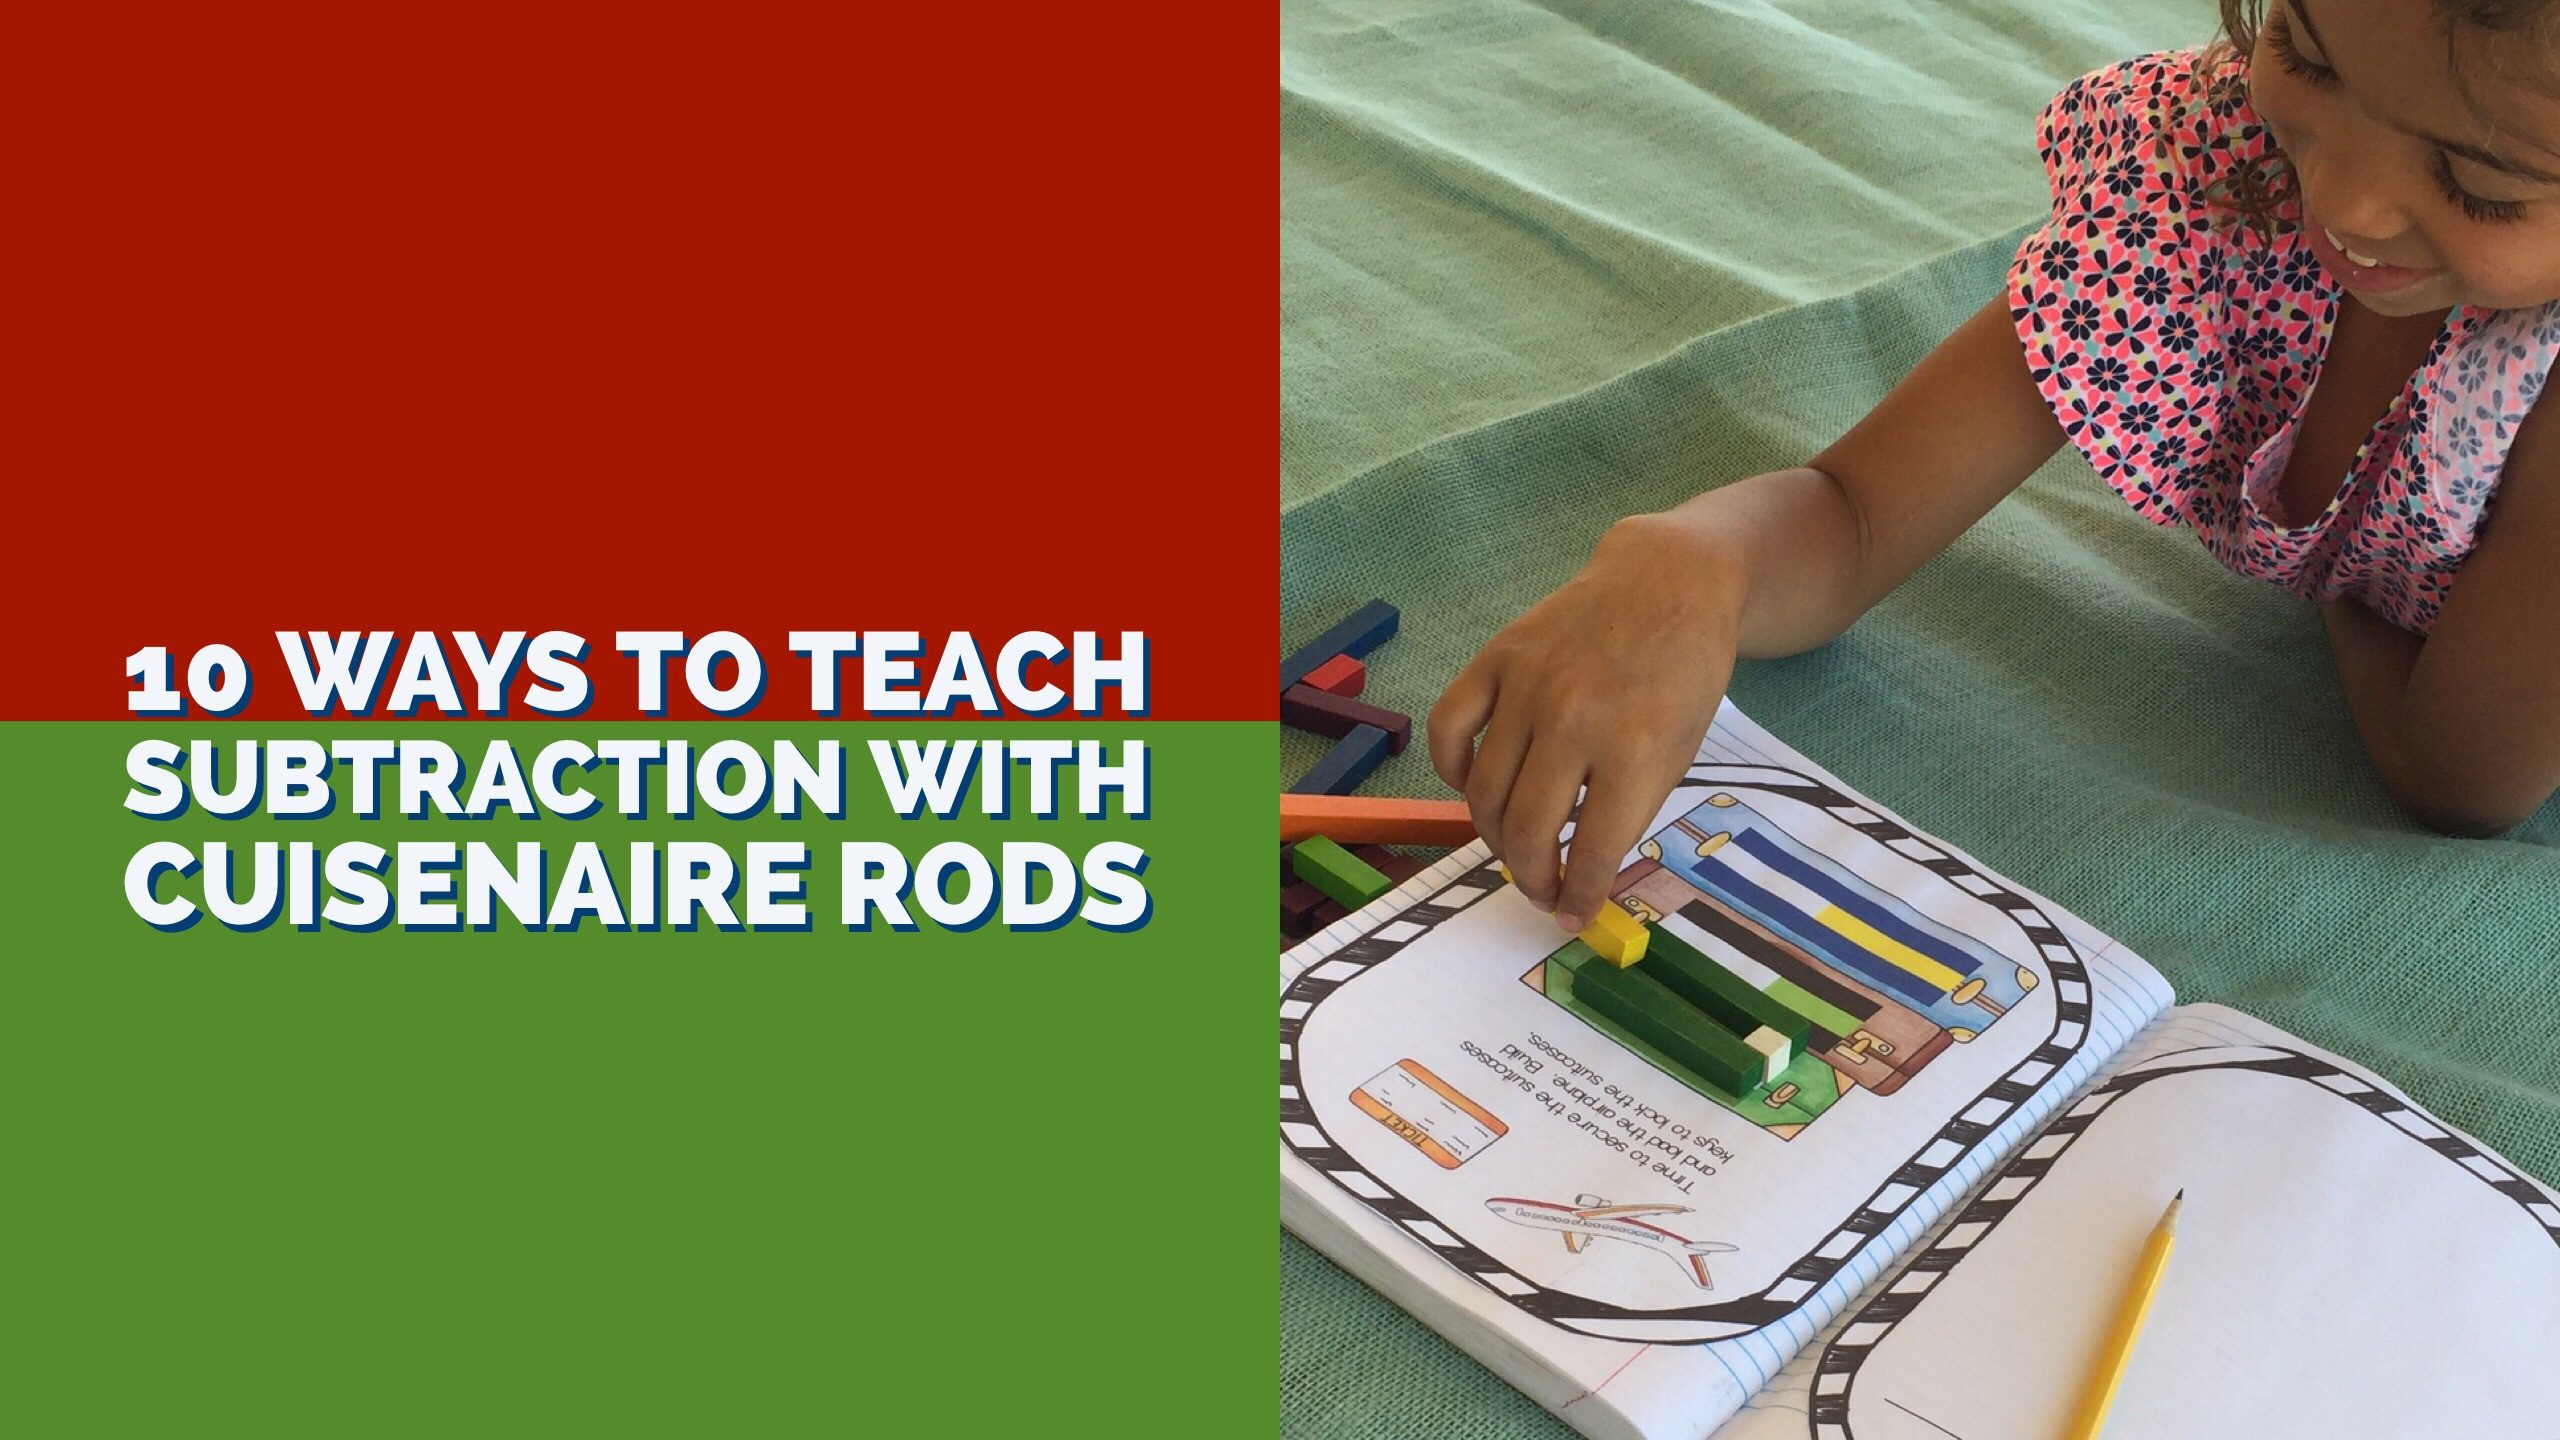 10 Ways To Teach Subtraction Using Cuisenaire Rods